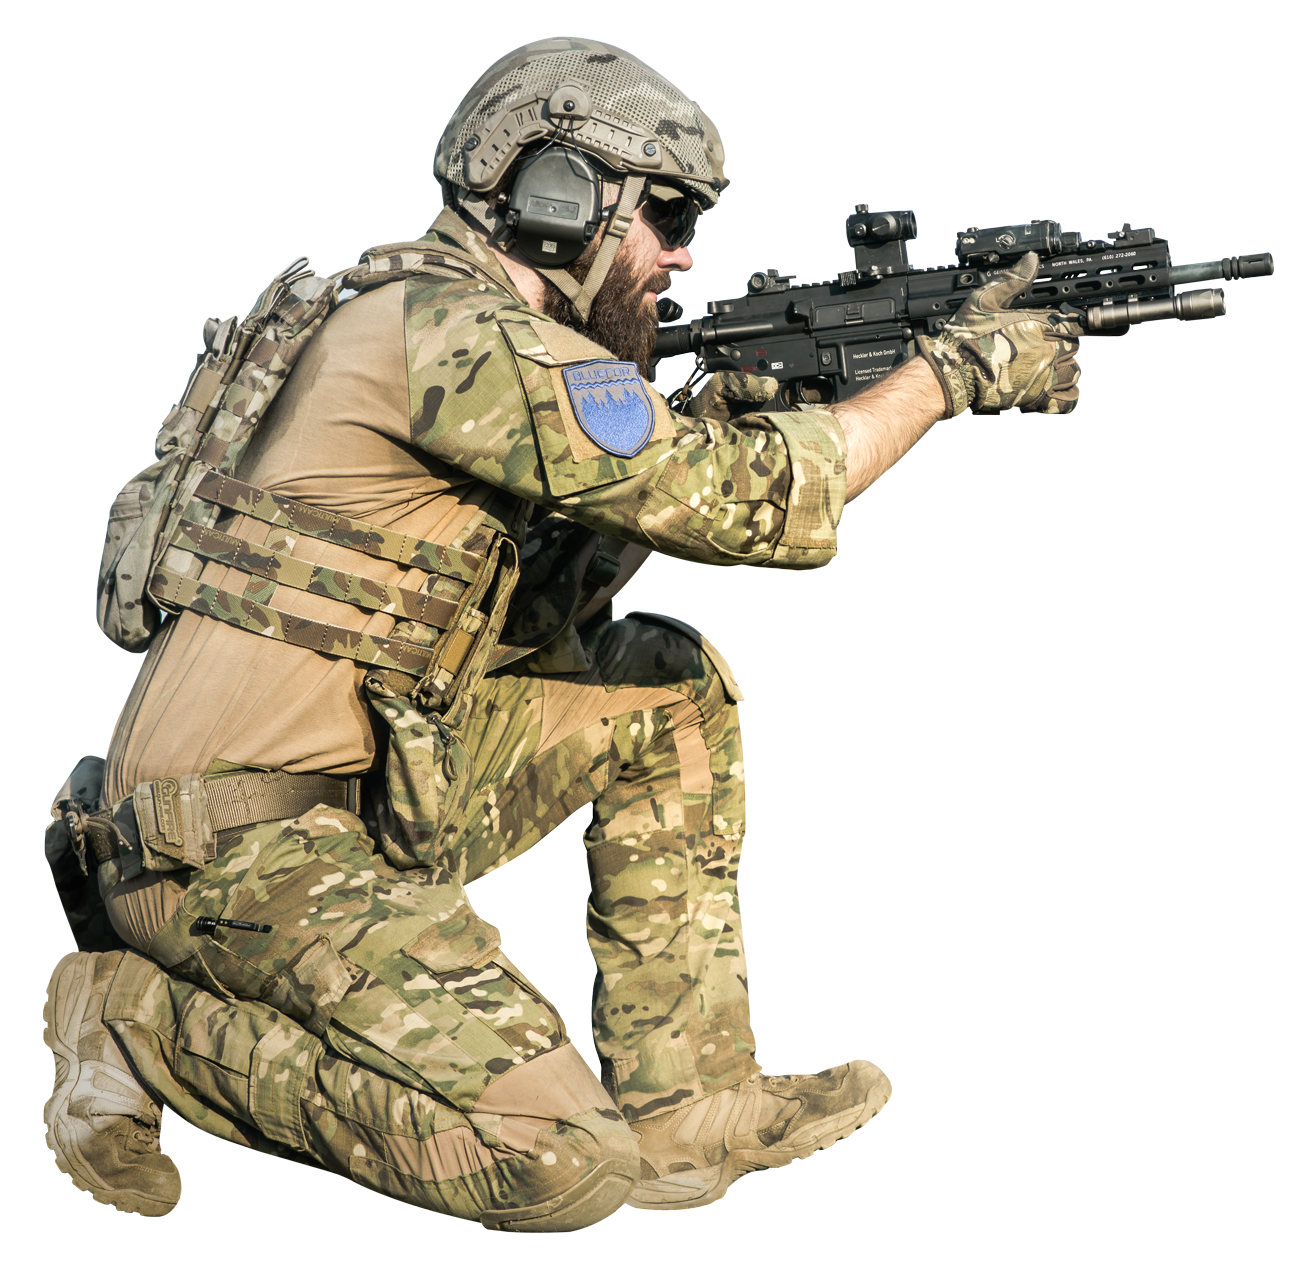 PNG Military Soldier Transparent Military Soldier.PNG Images.